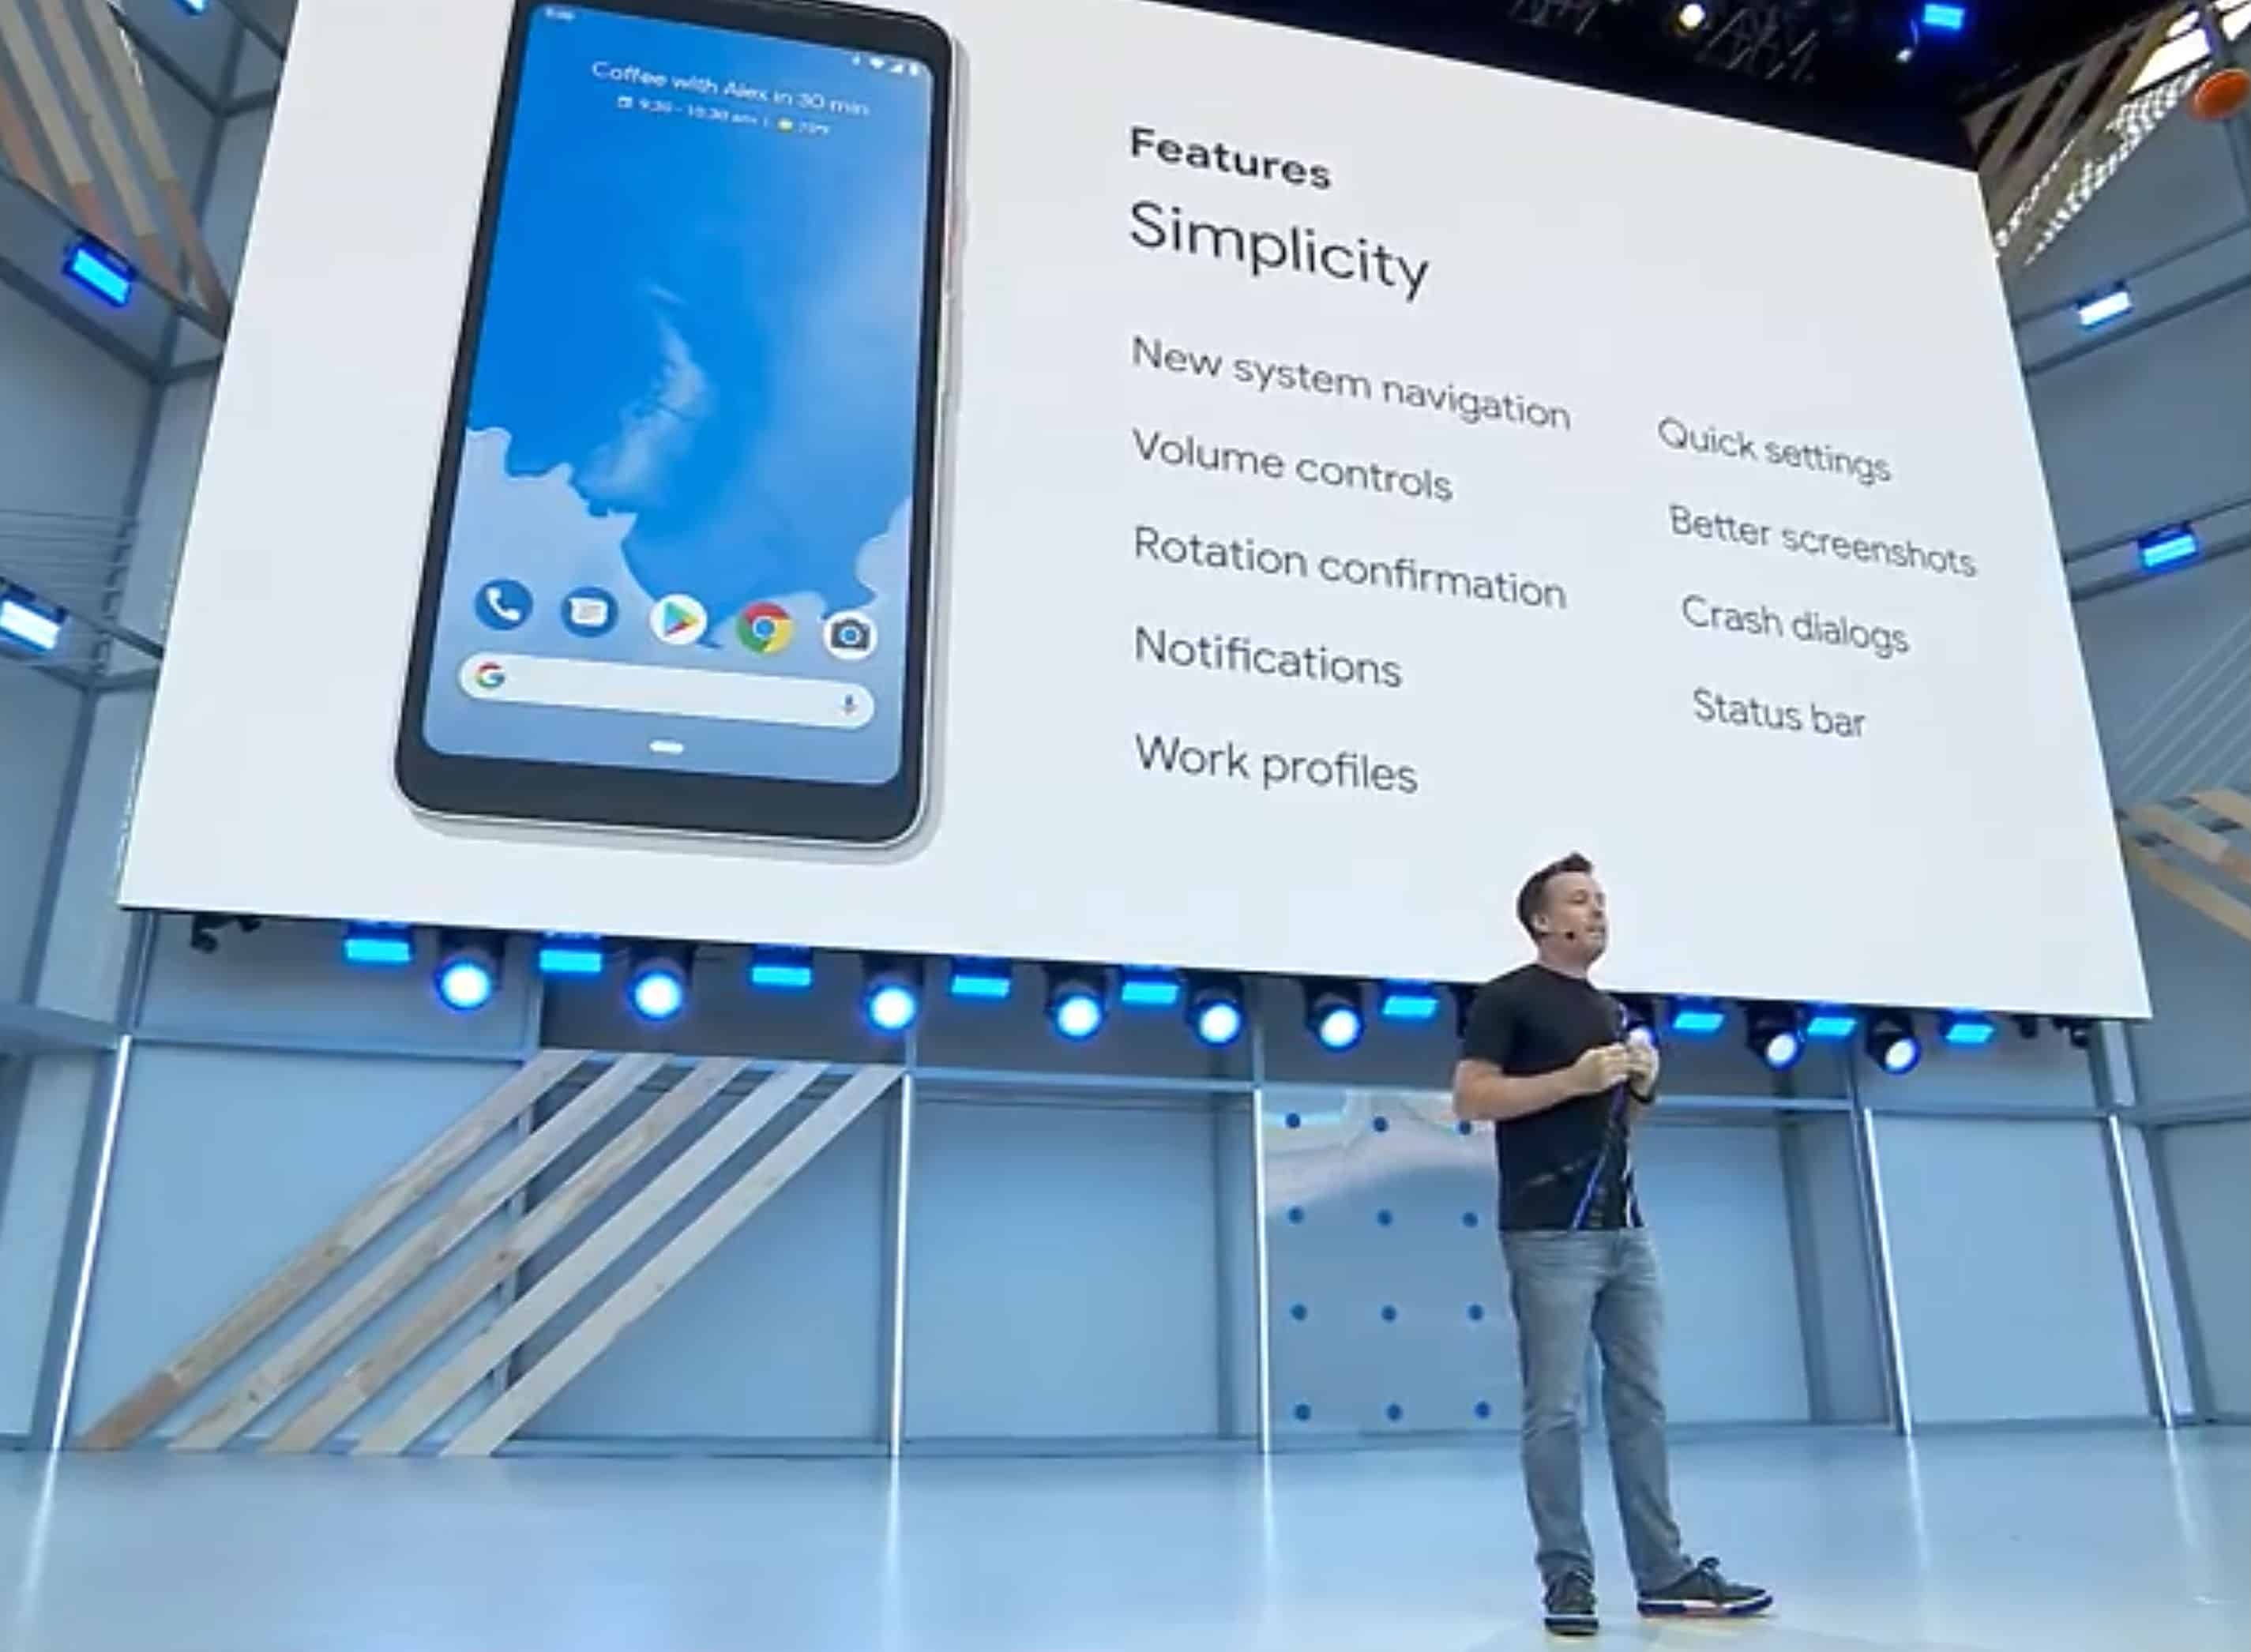 Android P is an AI-focused update of Google's mobile operating system.